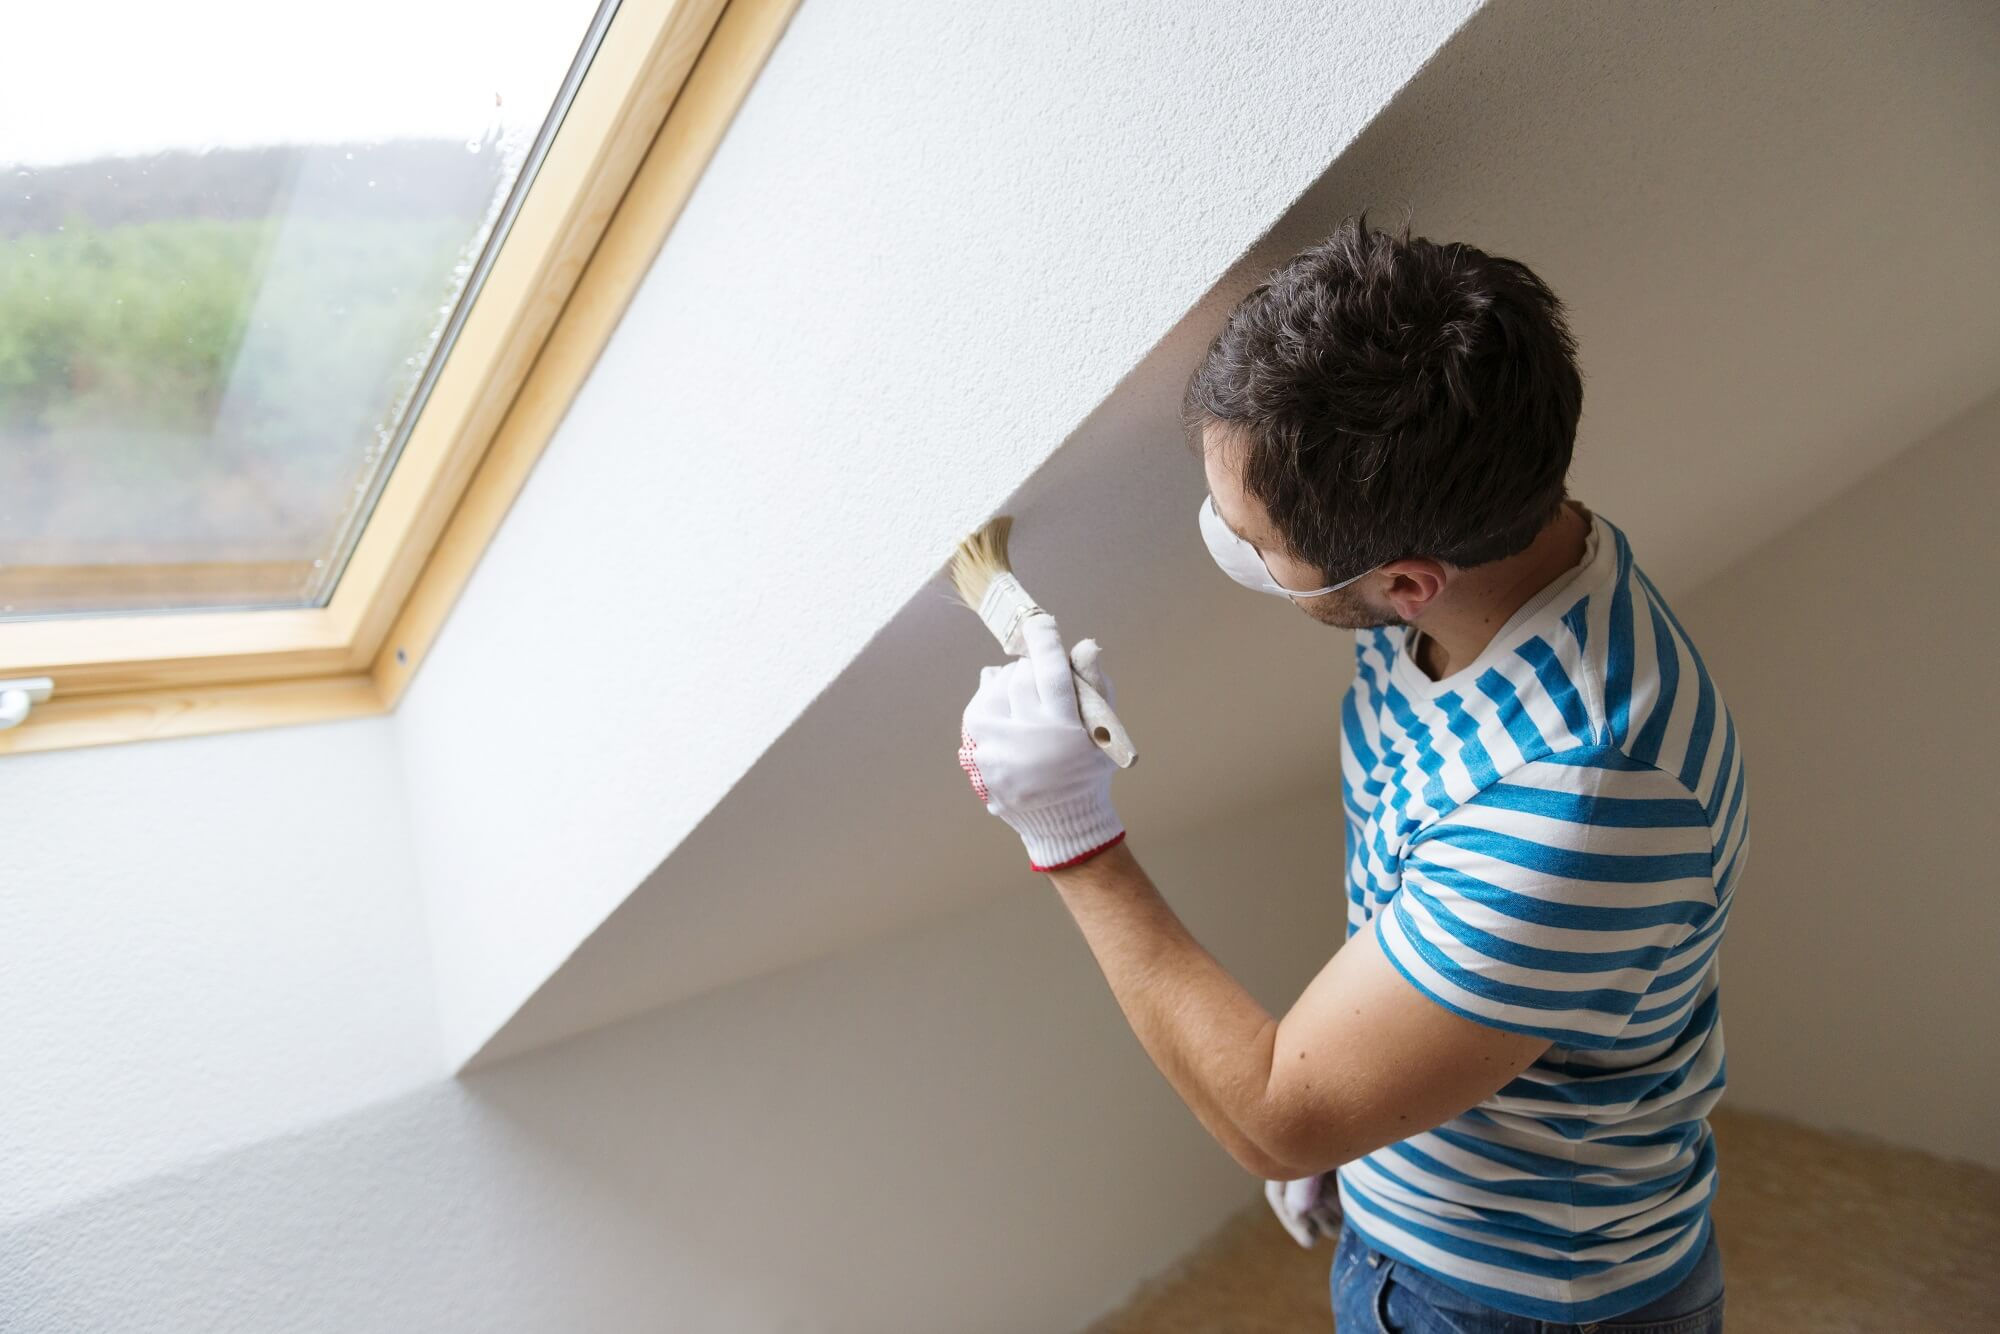 Professional painter painting the wall of a new home with a paintbrush